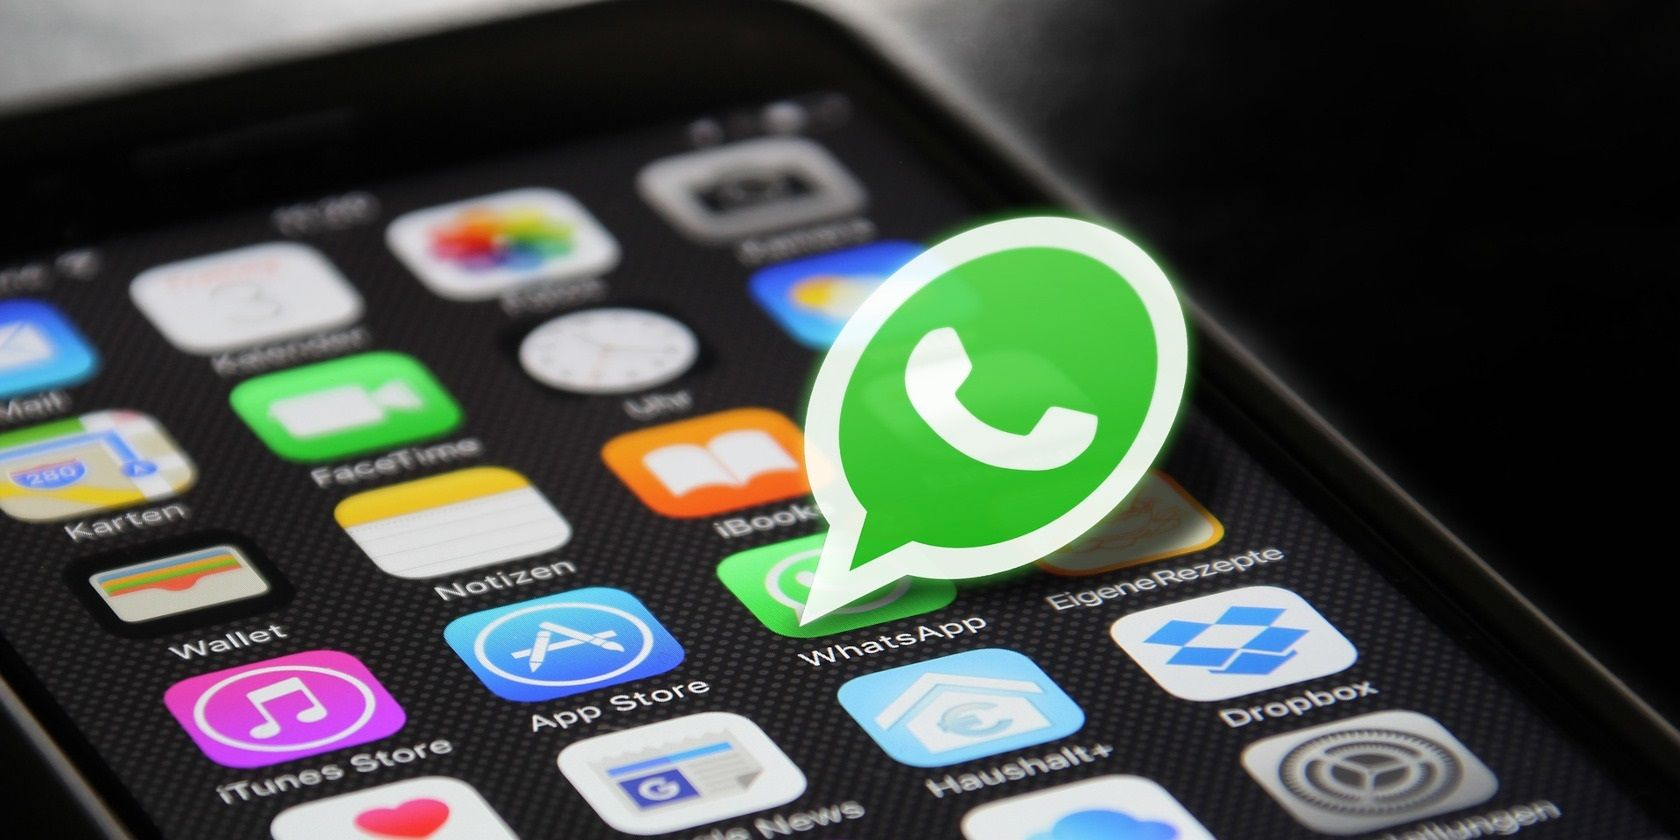 Why Are People Suddenly Looking for WhatsApp Alternatives?